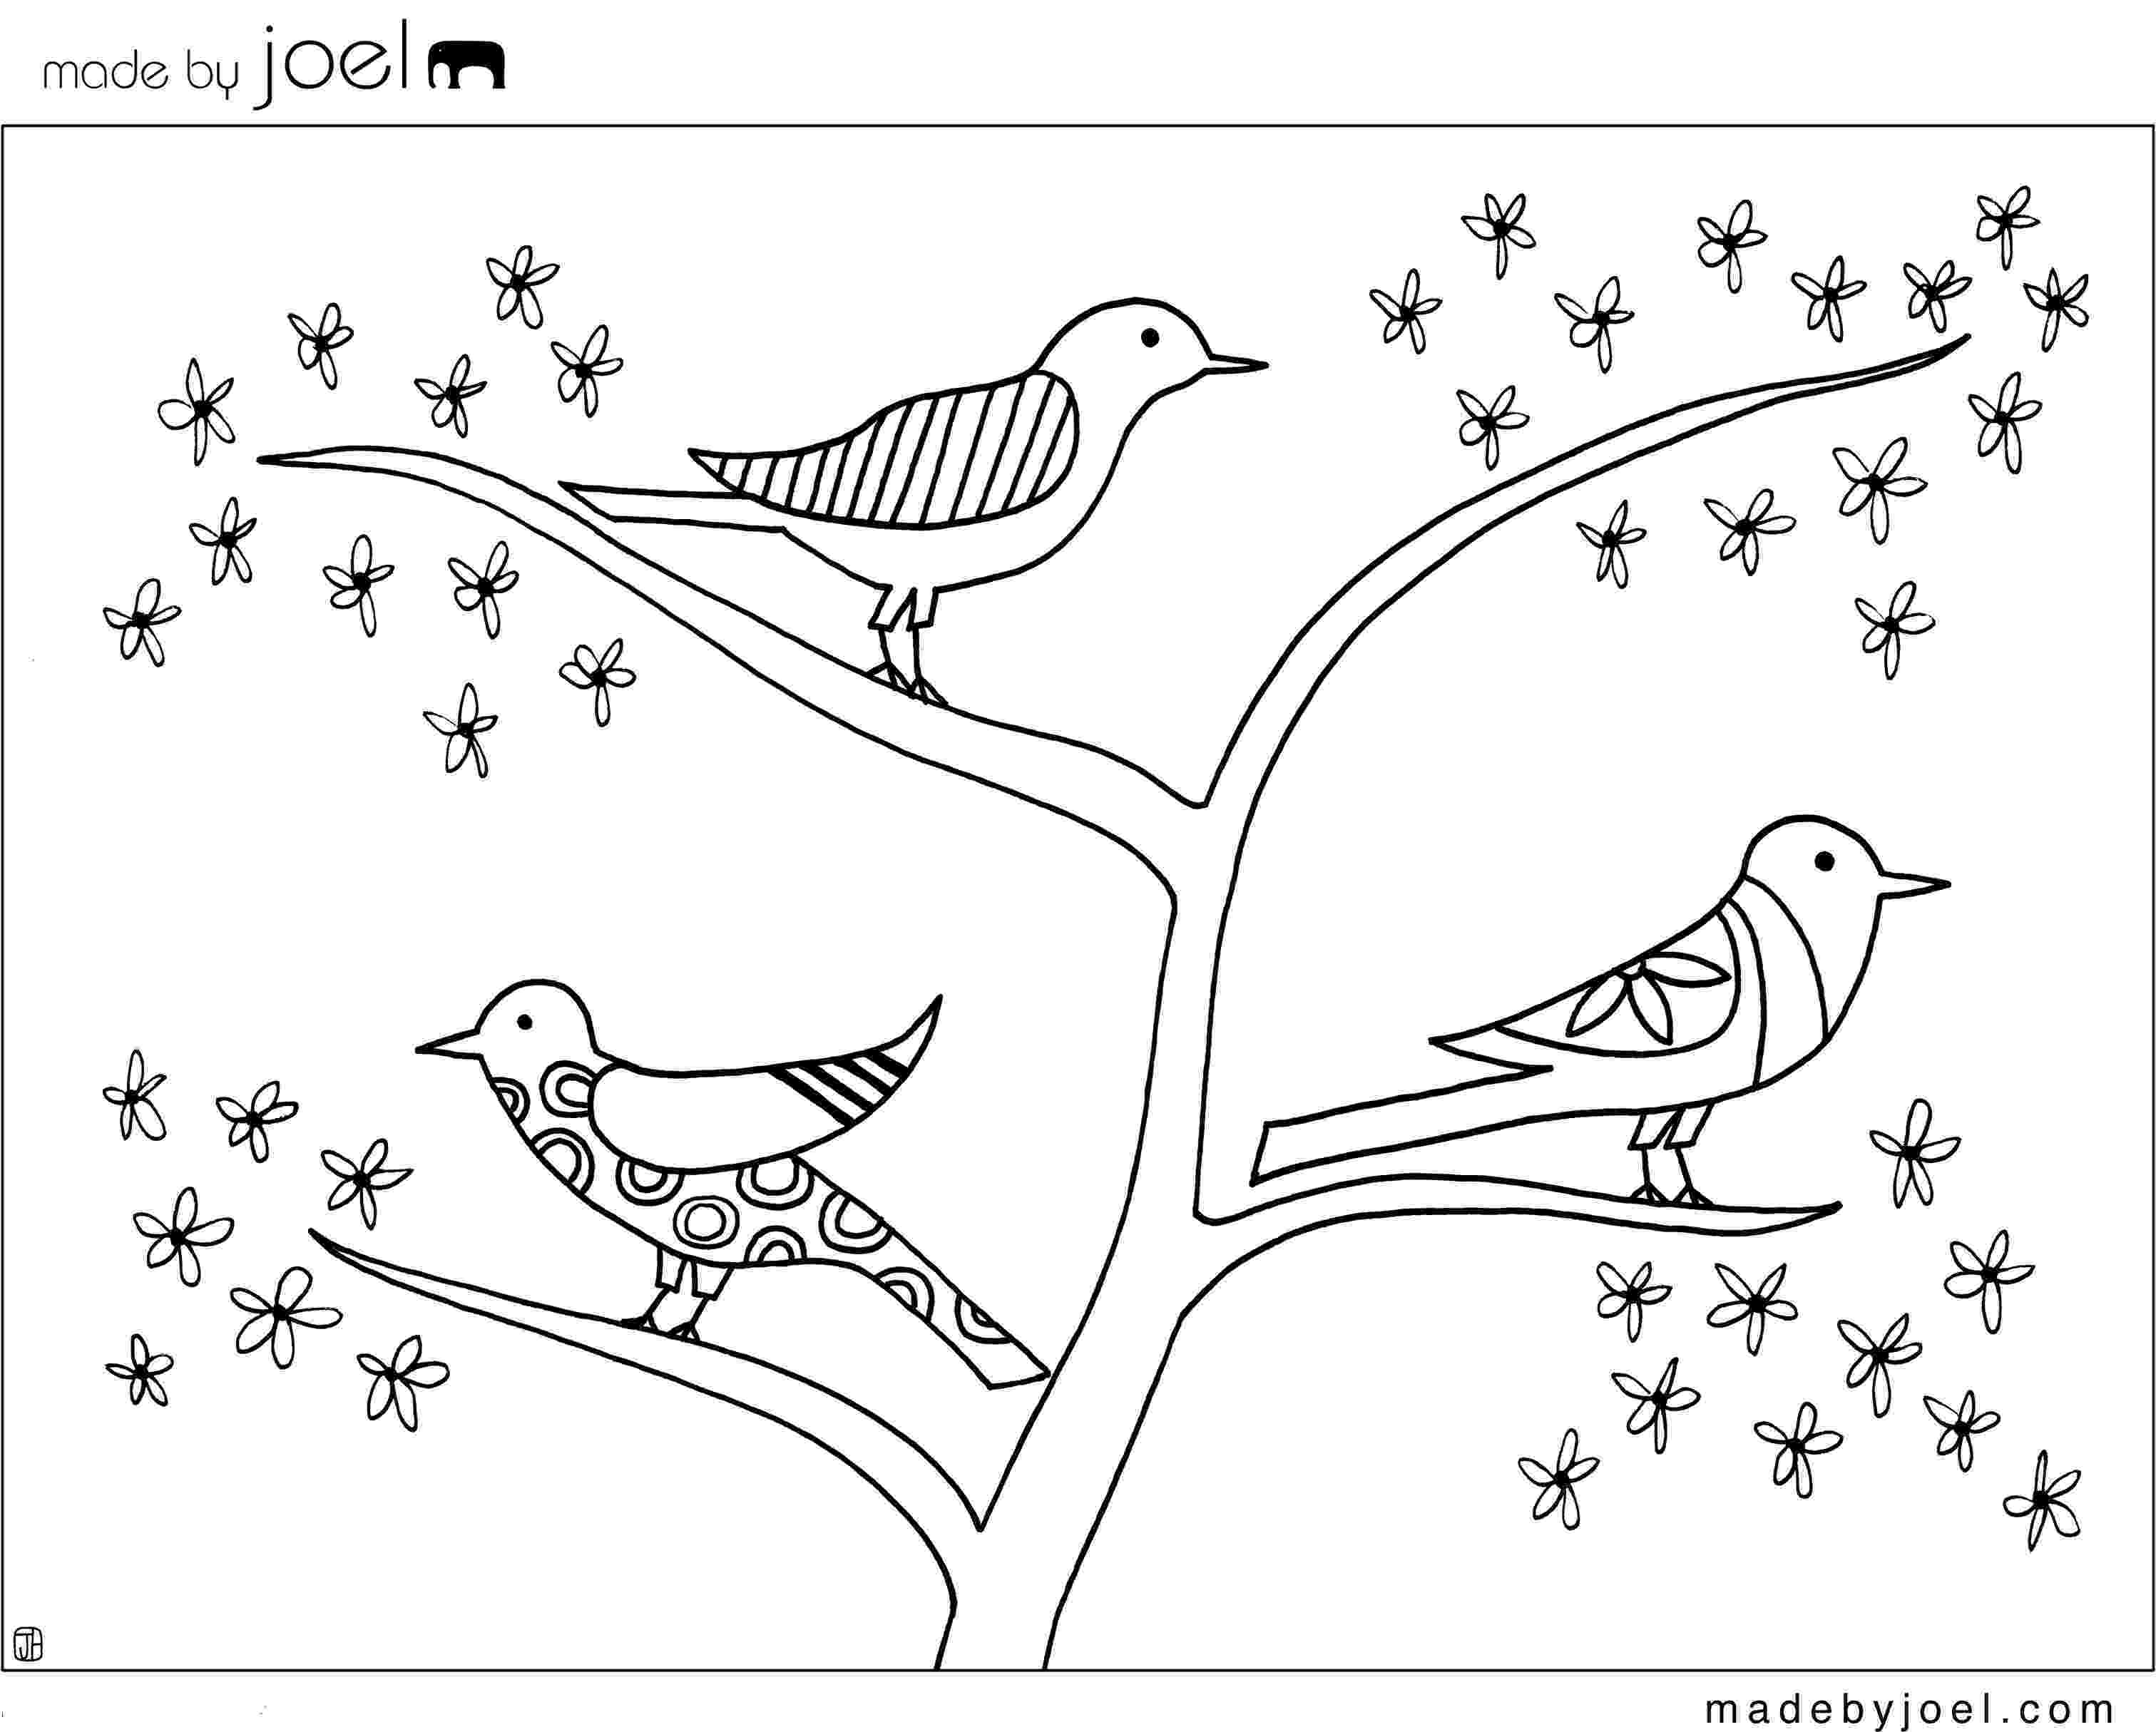 bird coloring pages to print free printable angry bird coloring pages for kids print pages coloring to bird